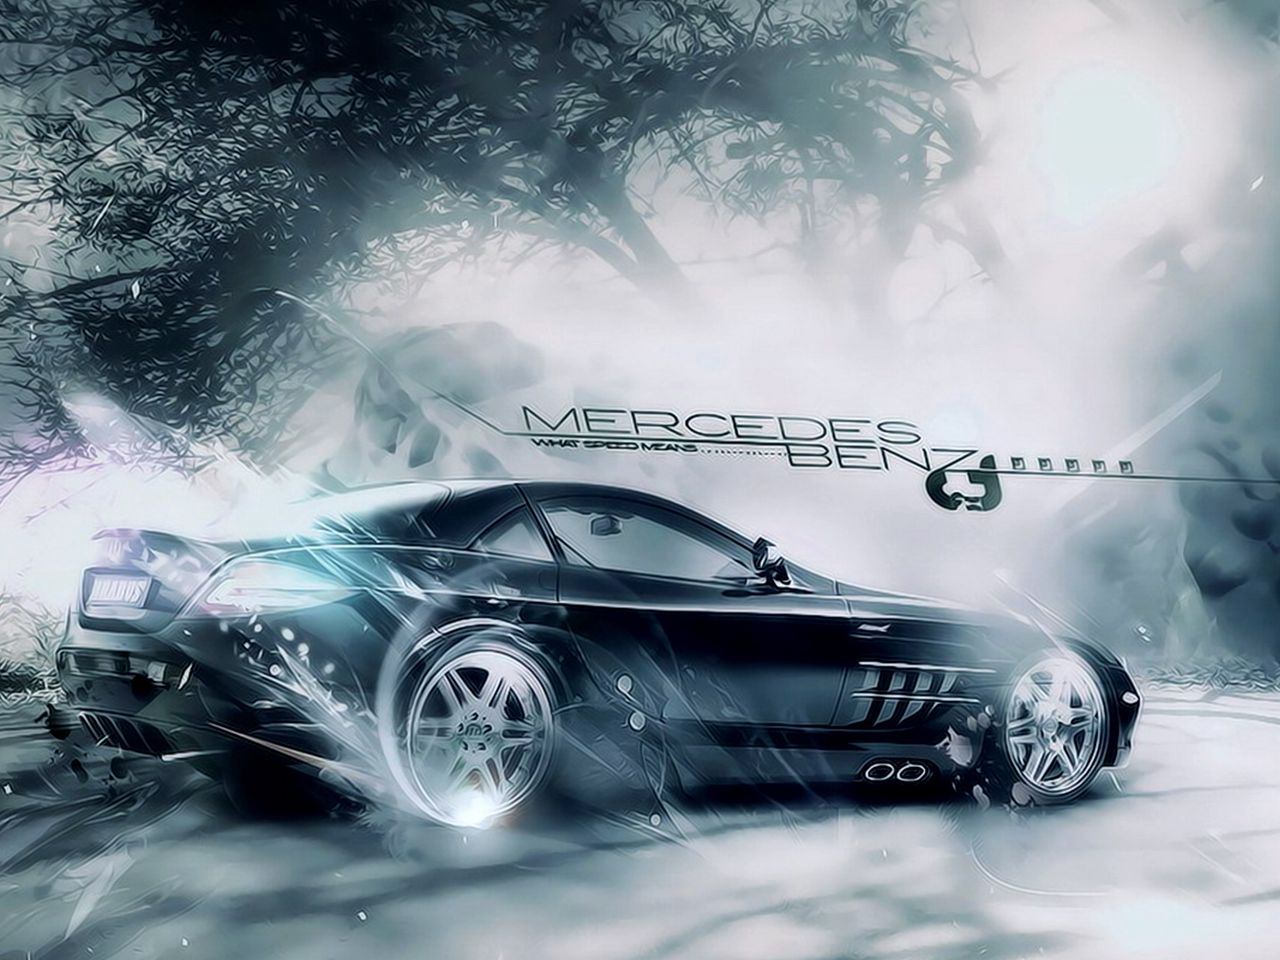 wallpaper download black painted cars wallpapers in hd download 1280x960